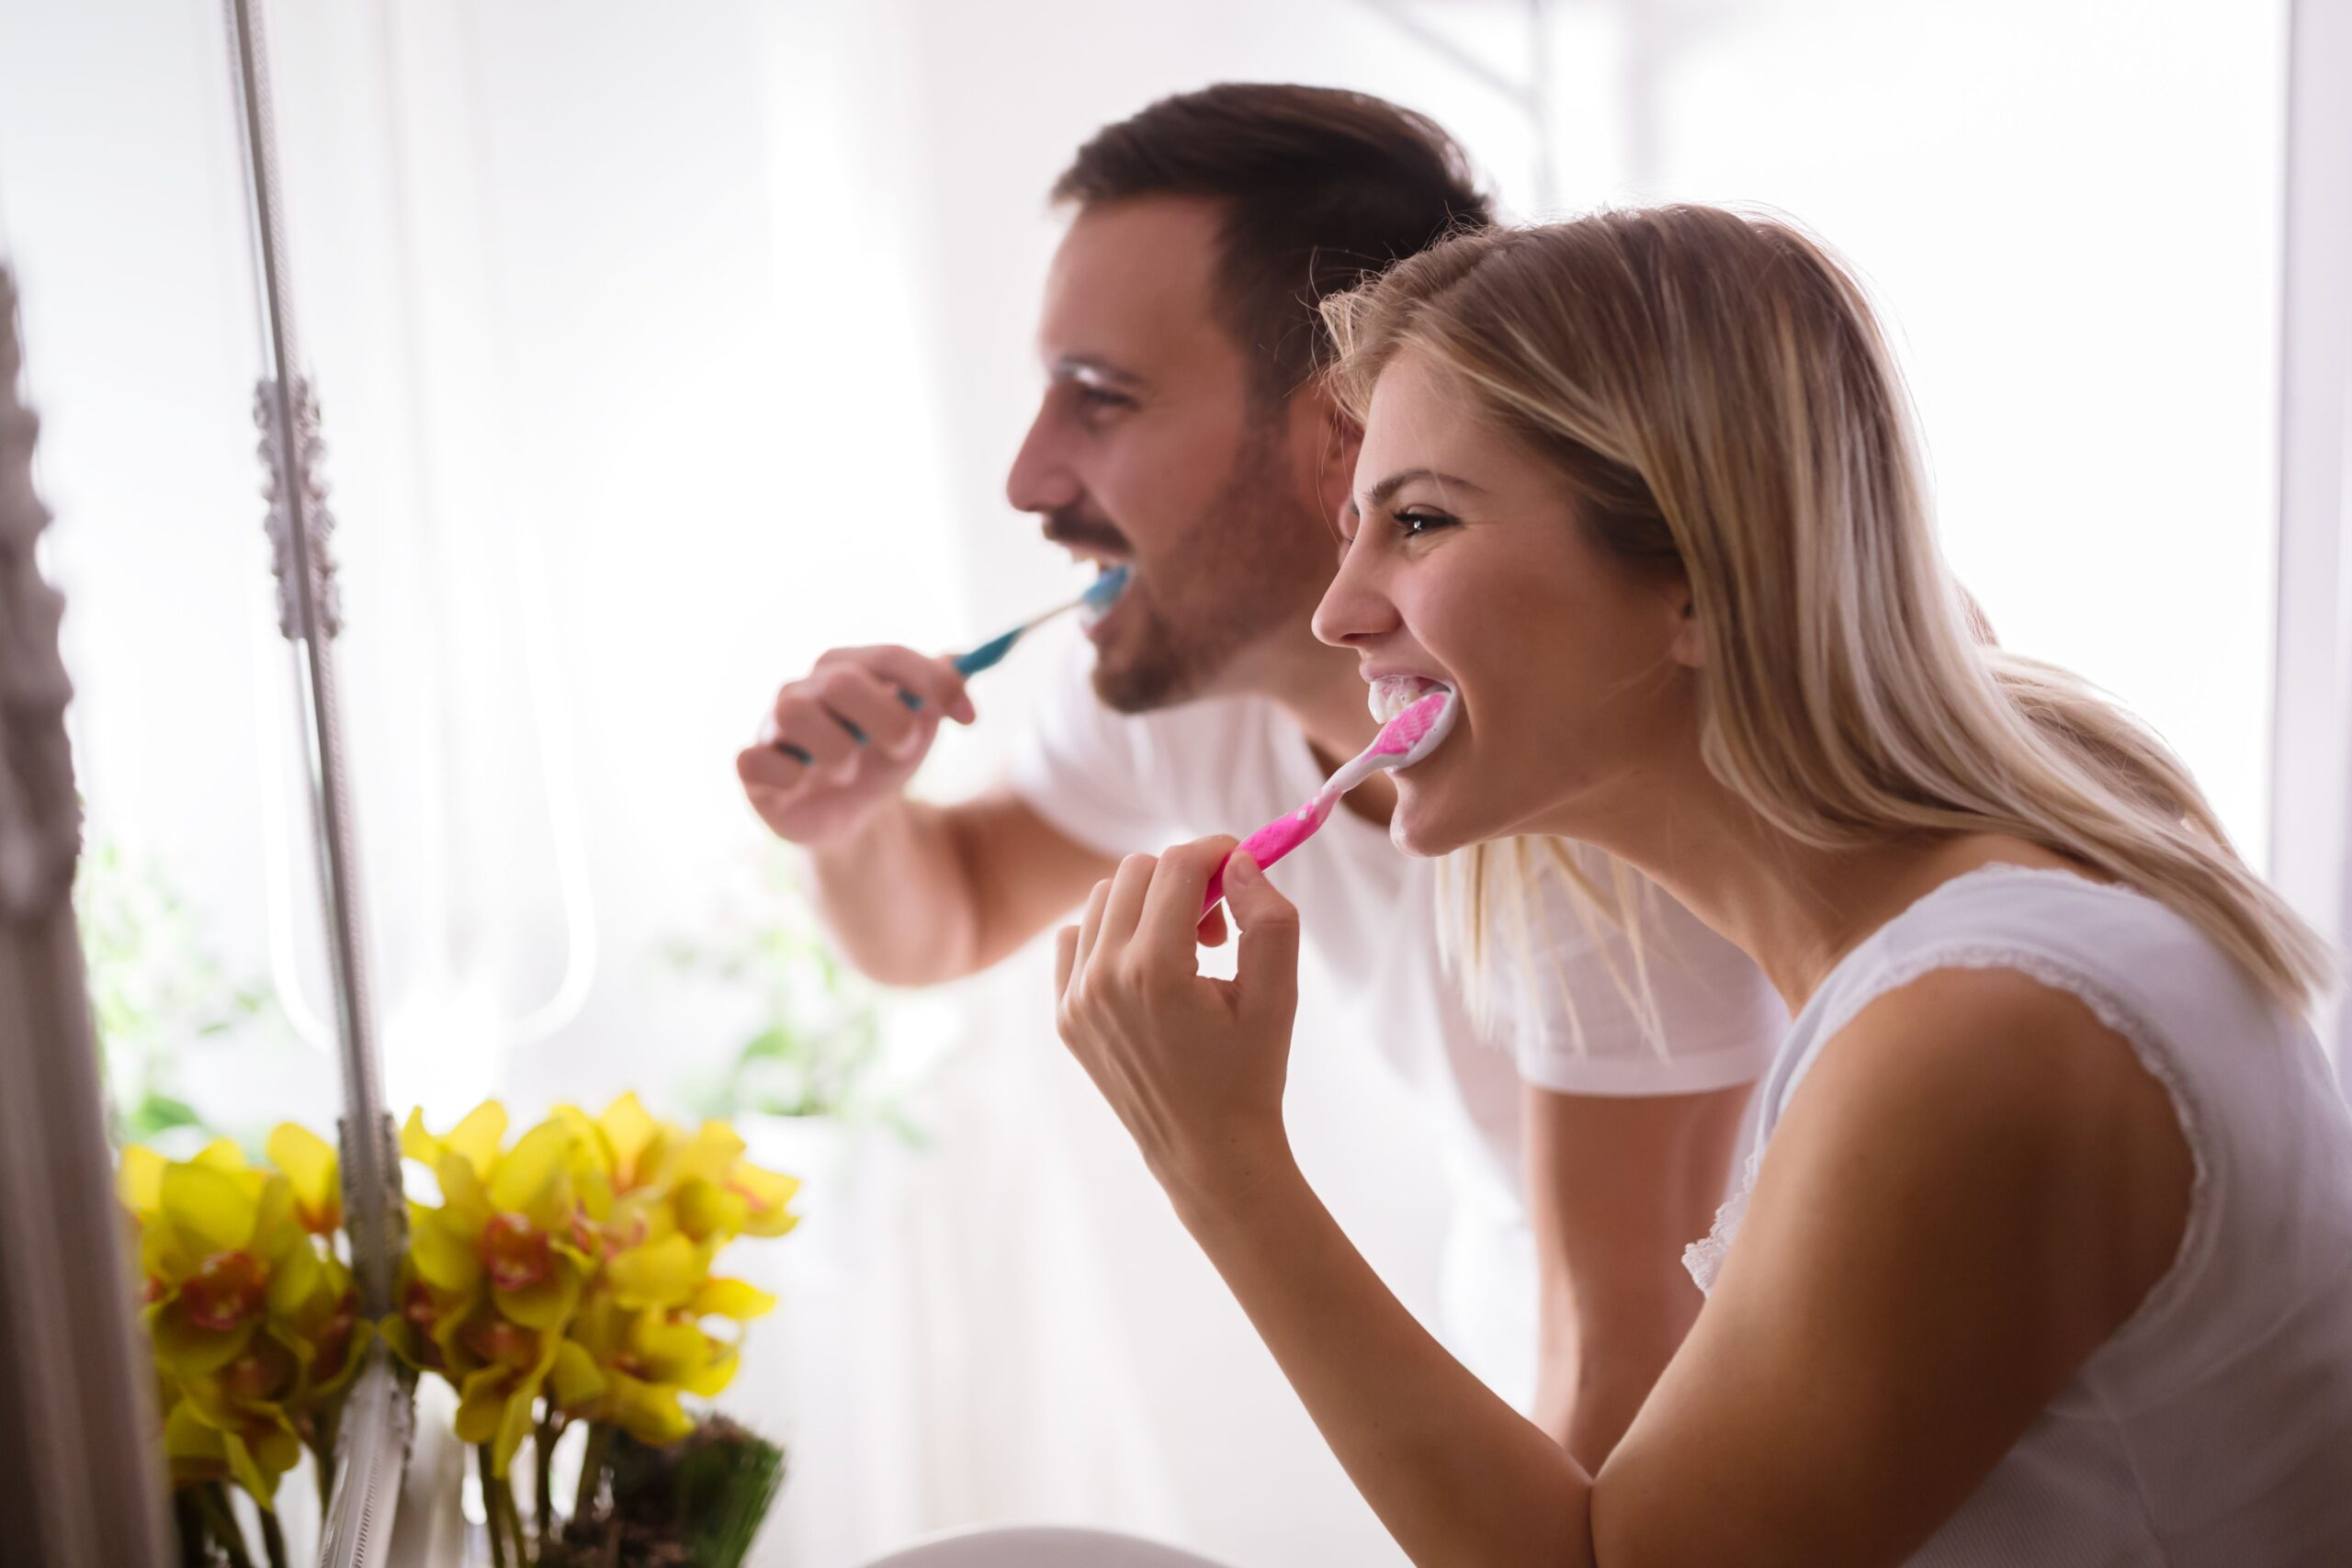 Tenleytown Dentist | Are You Brushing Your Teeth Properly?